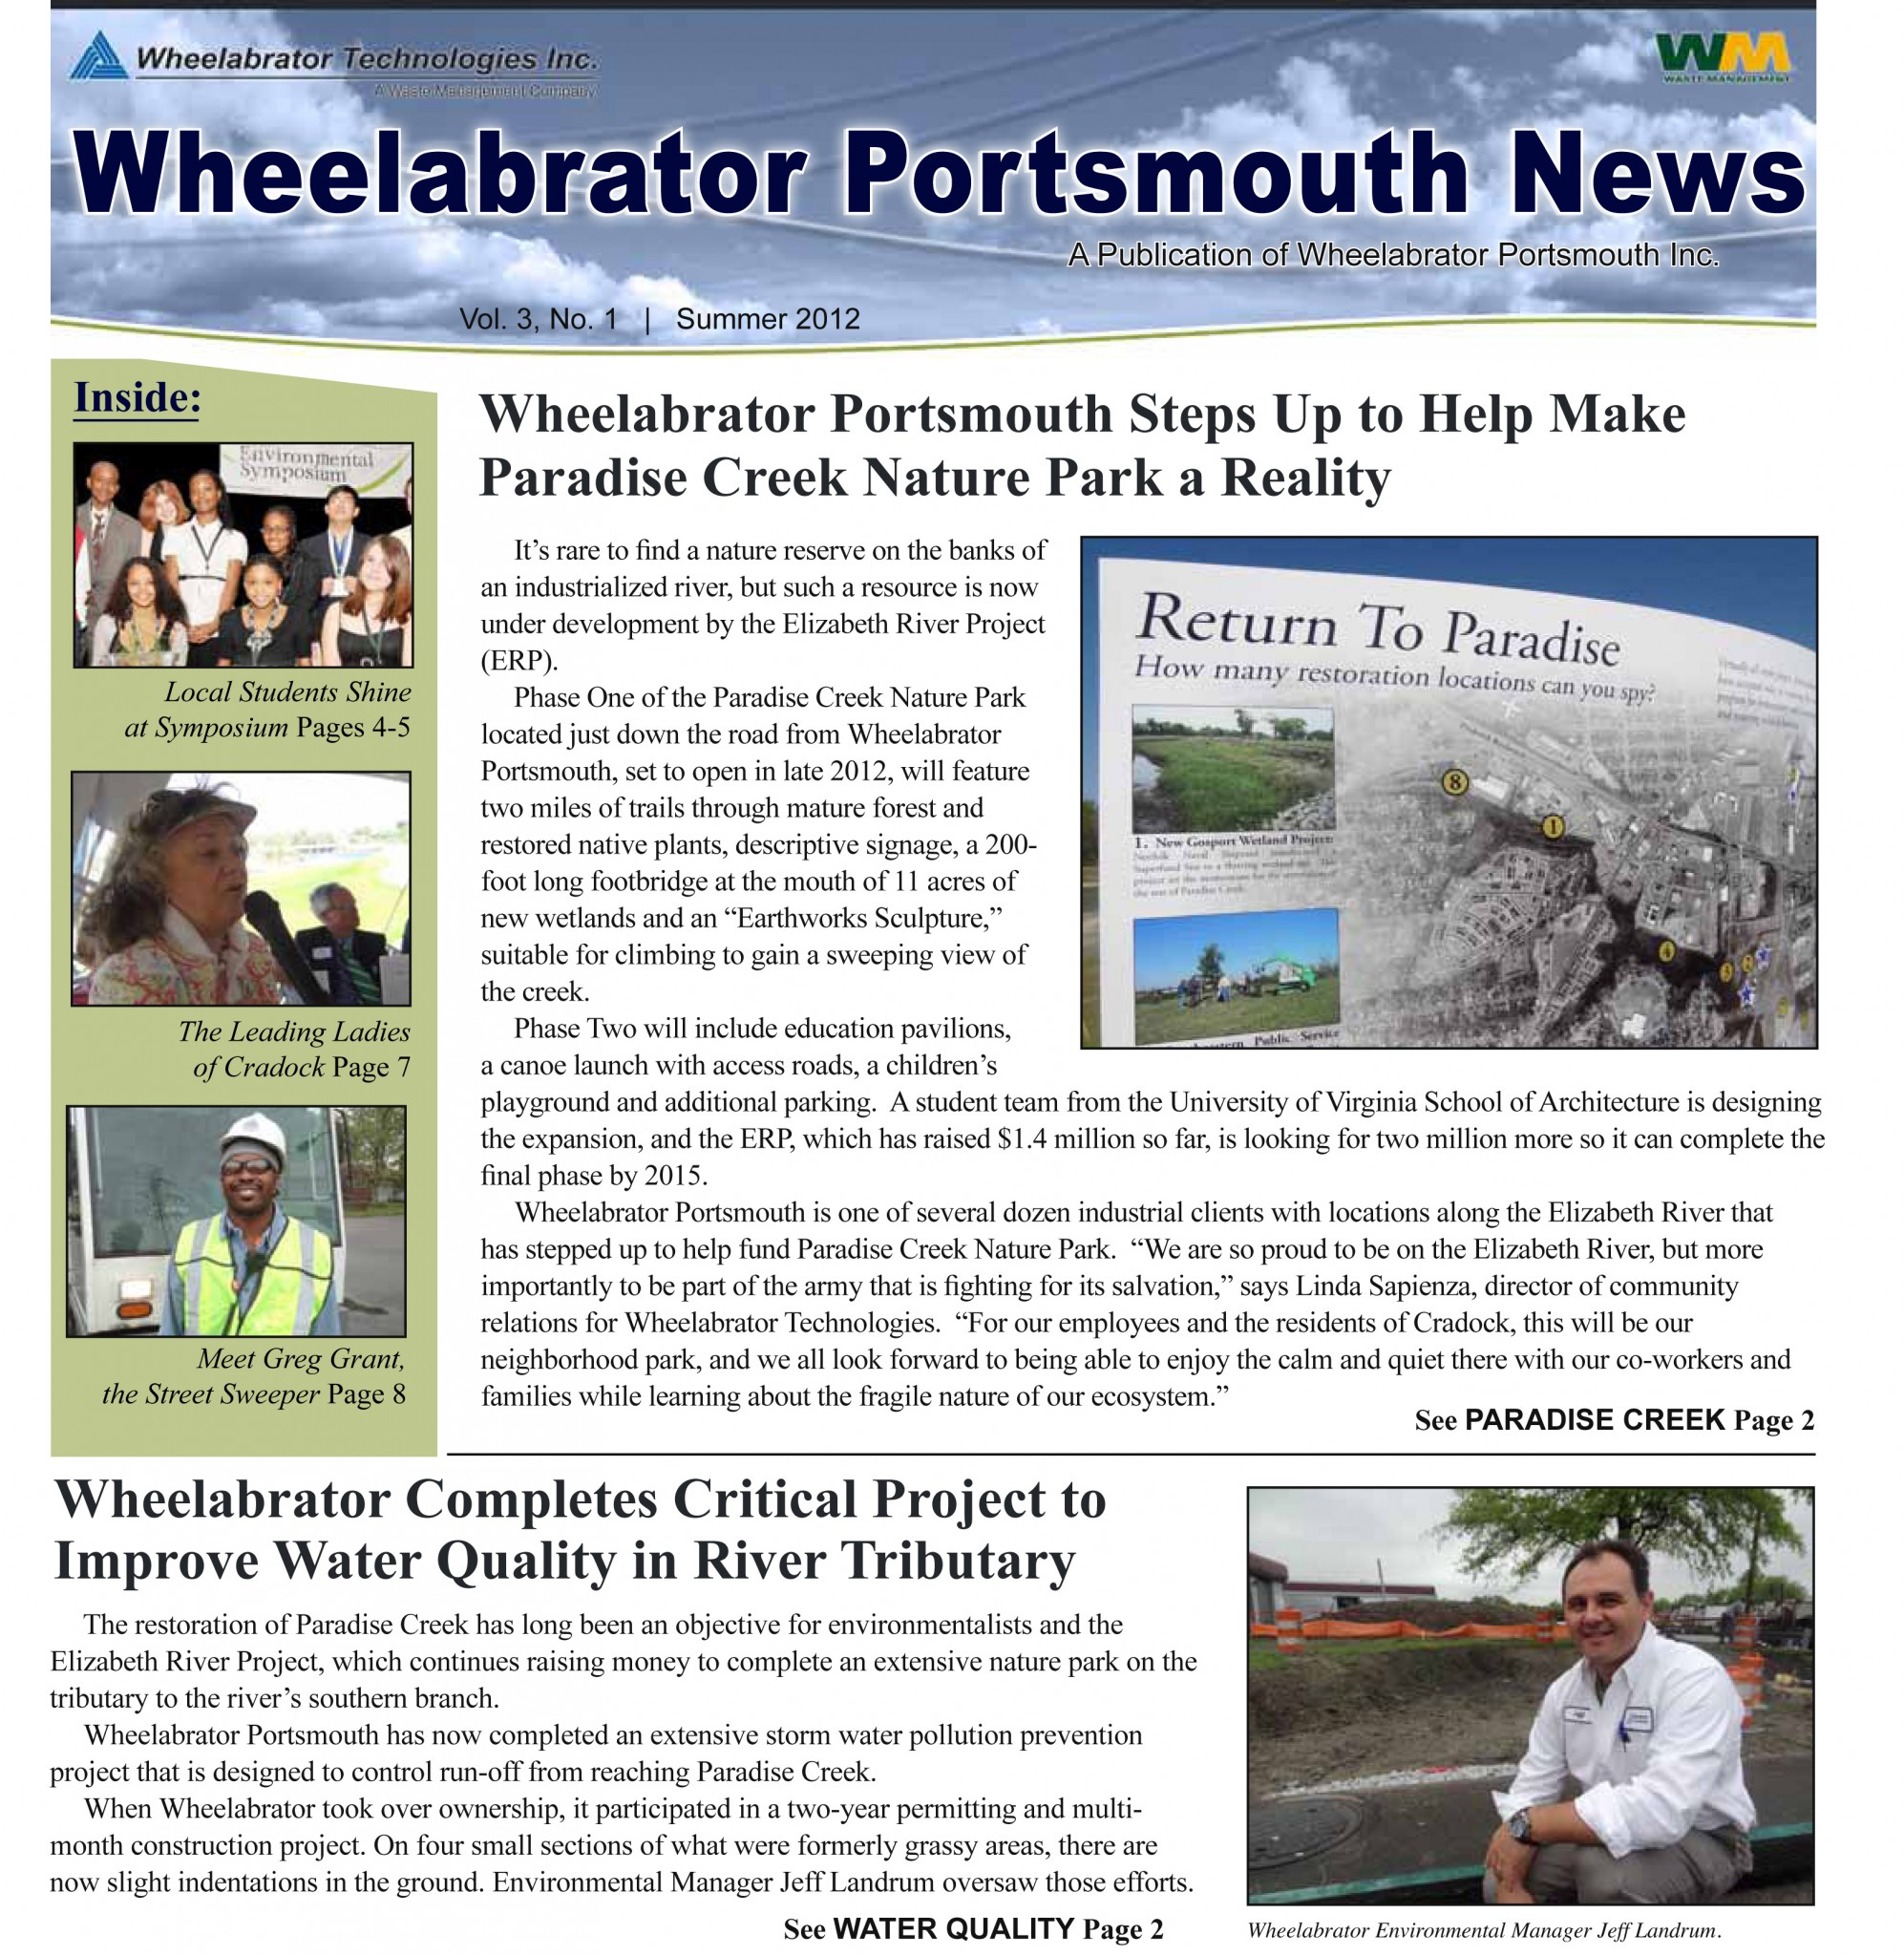 Wheelabrator Portsmouth puts out this newsletter twice a year.